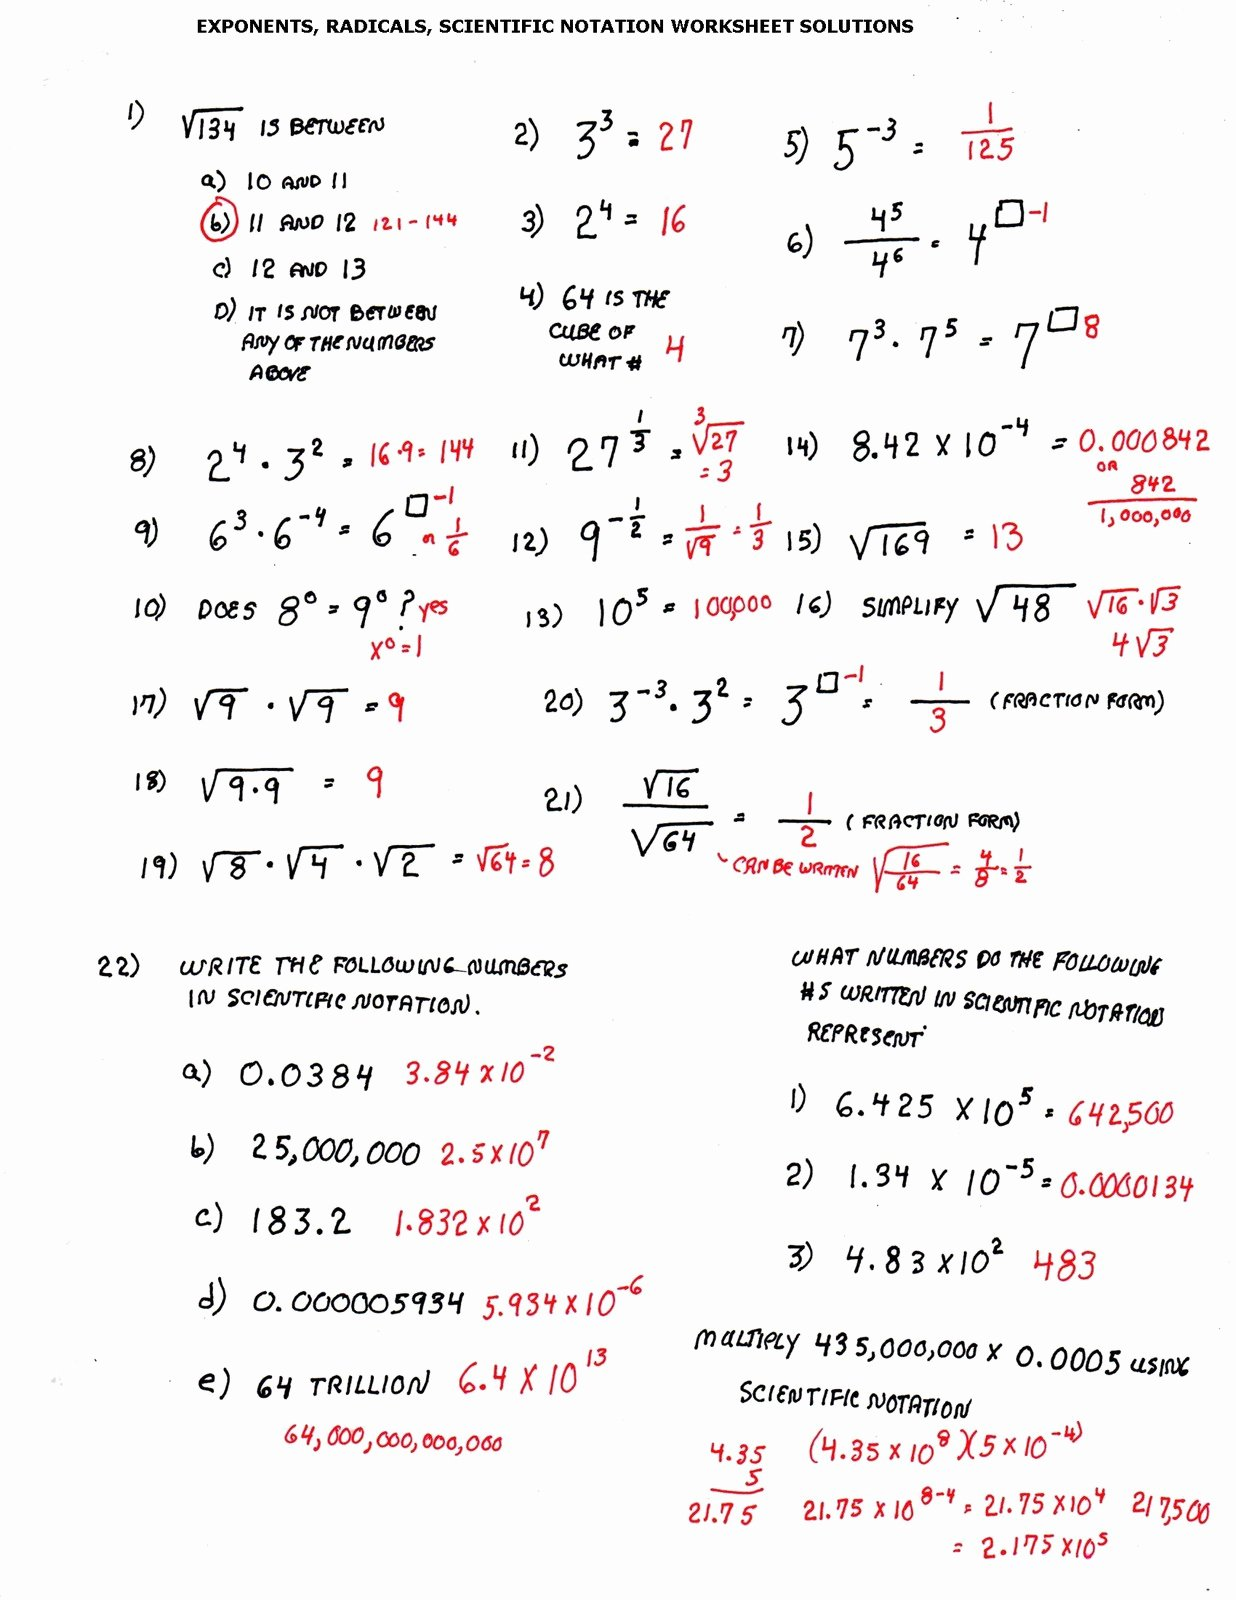 Scientific Notation Worksheet 8th Grade Beautiful Cobb Adult Ed Math solutions to Last 3 Worksheets